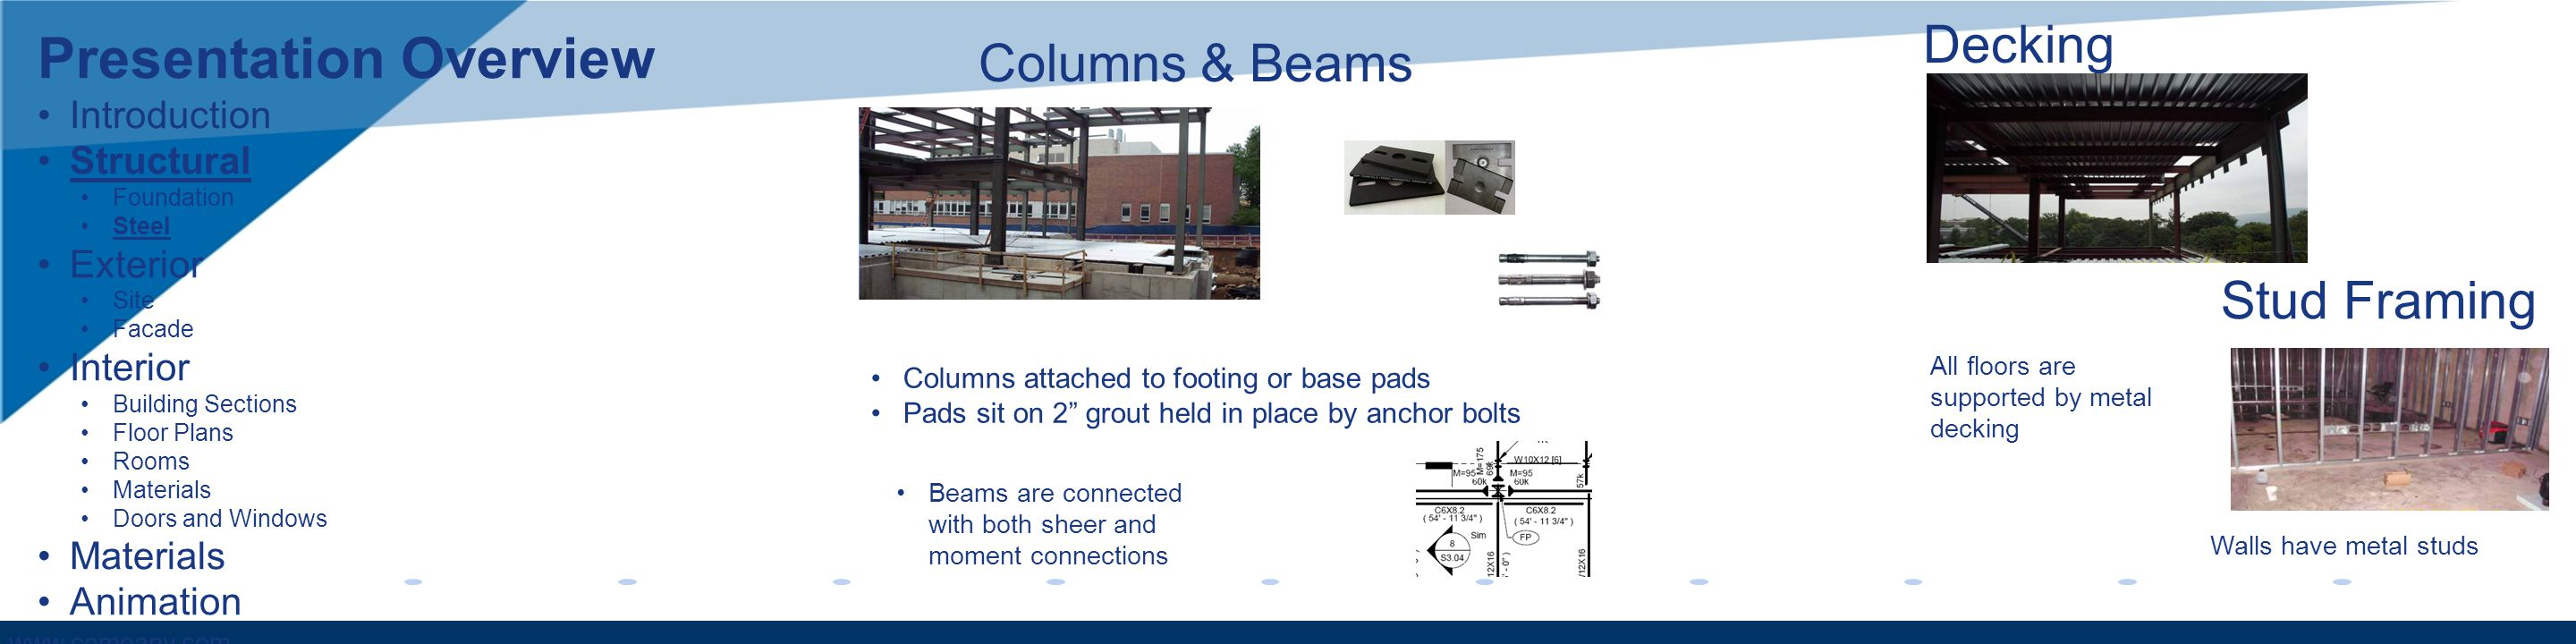 www.company.com Columns & Beams Columns attached to footing or base pads Pads sit on 2 grout held in place by anchor bolts Beams are connected with both sheer and moment connections Decking Stud Framing All floors are supported by metal decking Walls have metal studs Presentation Overview Introduction Structural Foundation Steel Exterior Site Facade Interior Building Sections Floor Plans Rooms Materials Doors and Windows Materials Animation